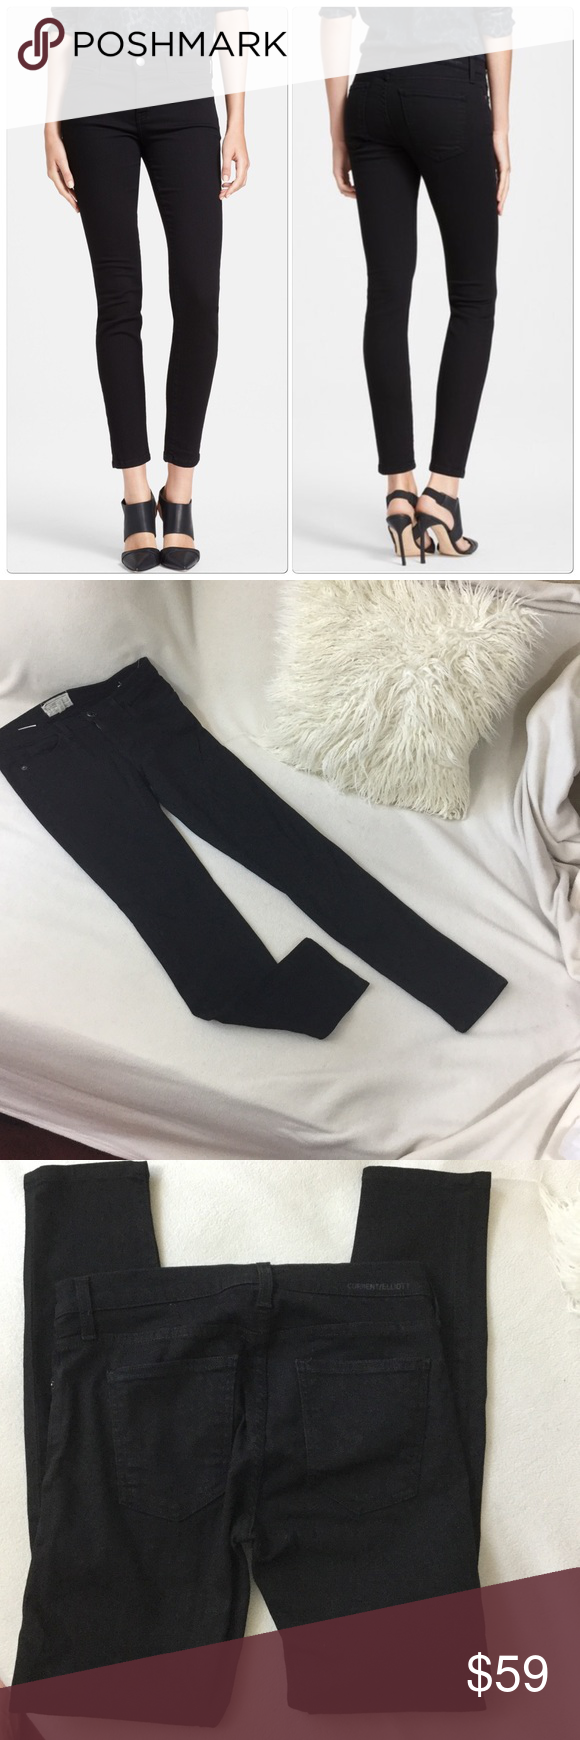 """Current/Elliot black skinny jeans Current/Elliot black skinny jeans. Wonderful condition and super Chic. Inseam measures 28"""" long 14"""" across waist and a 8 1/4"""" front rise. 💟 Current/Elliott Jeans Skinny"""